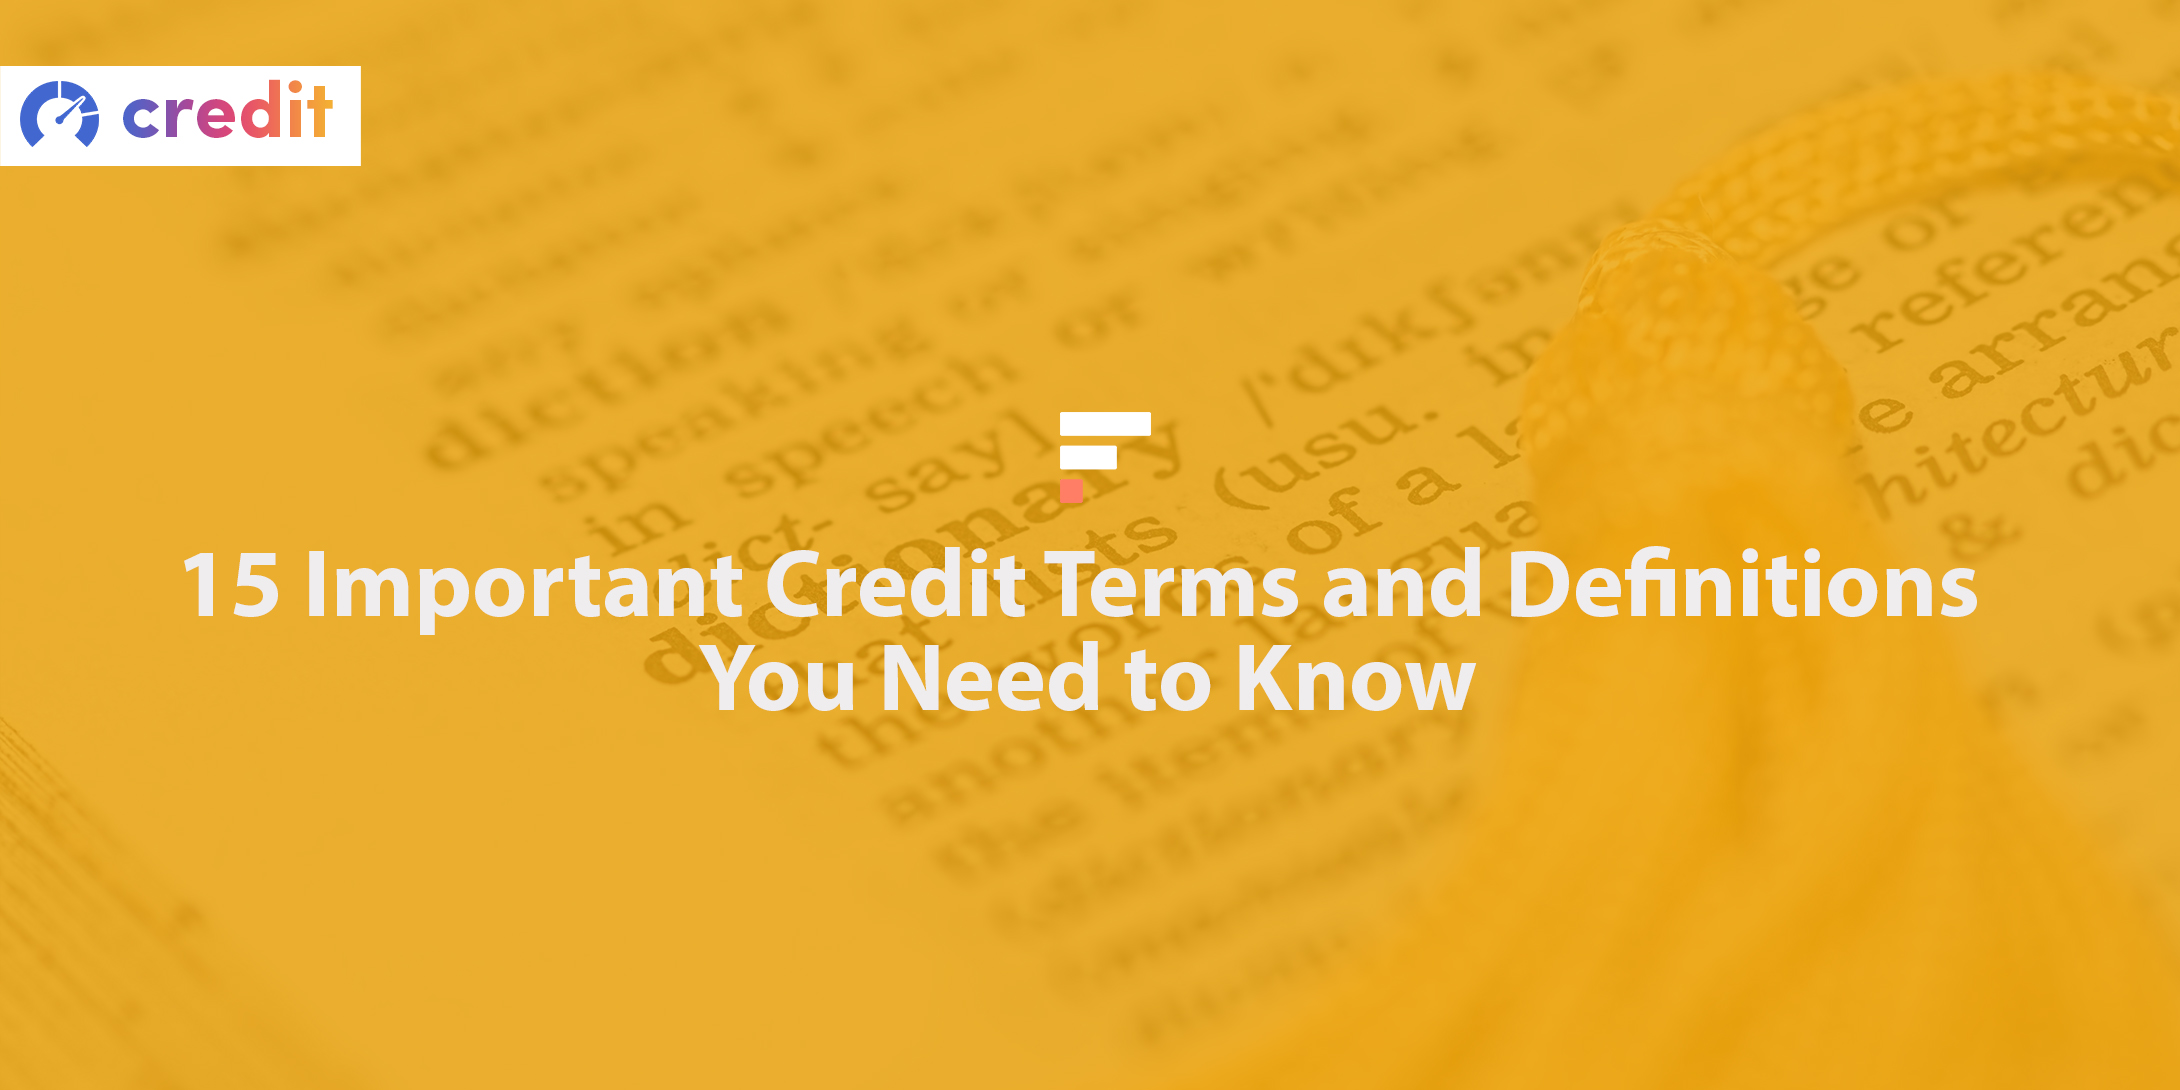 Important credit terms and definitions